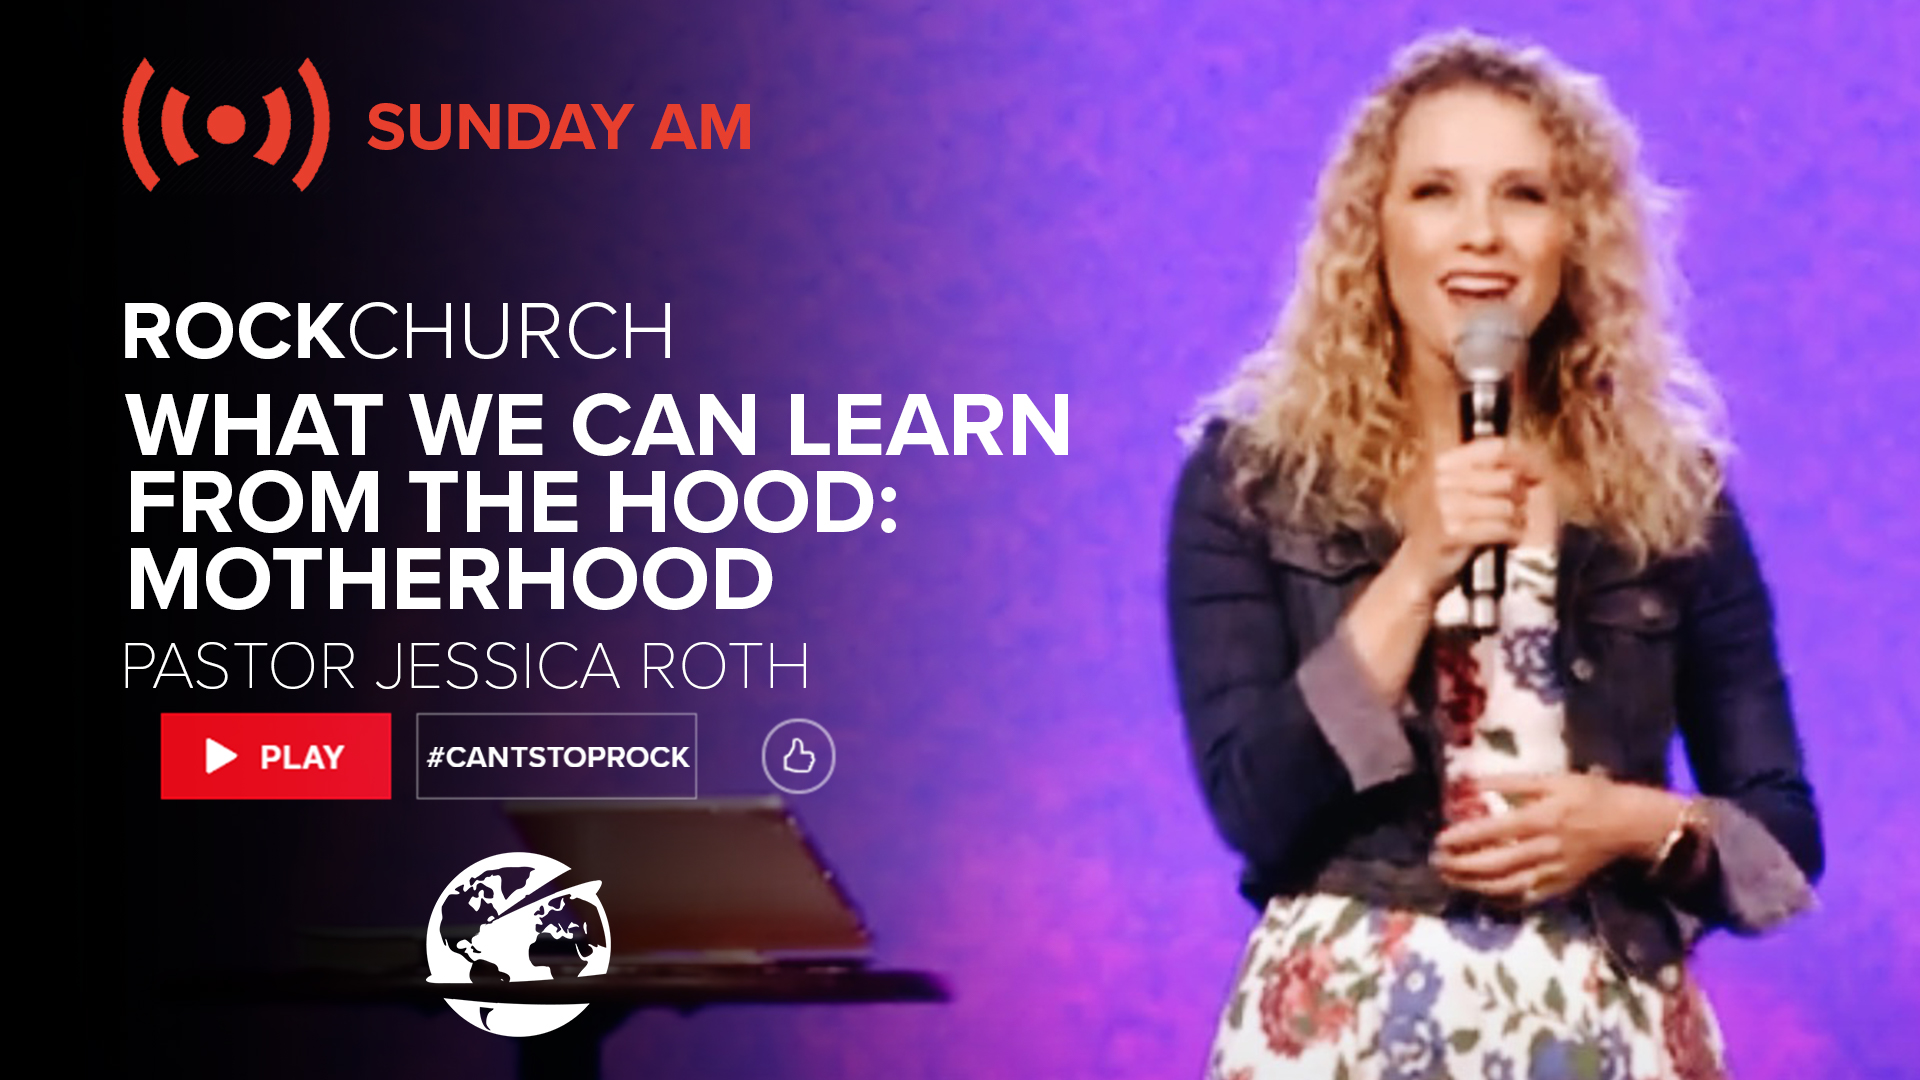 Watch What We Can Learn from the Hood, Motherhood